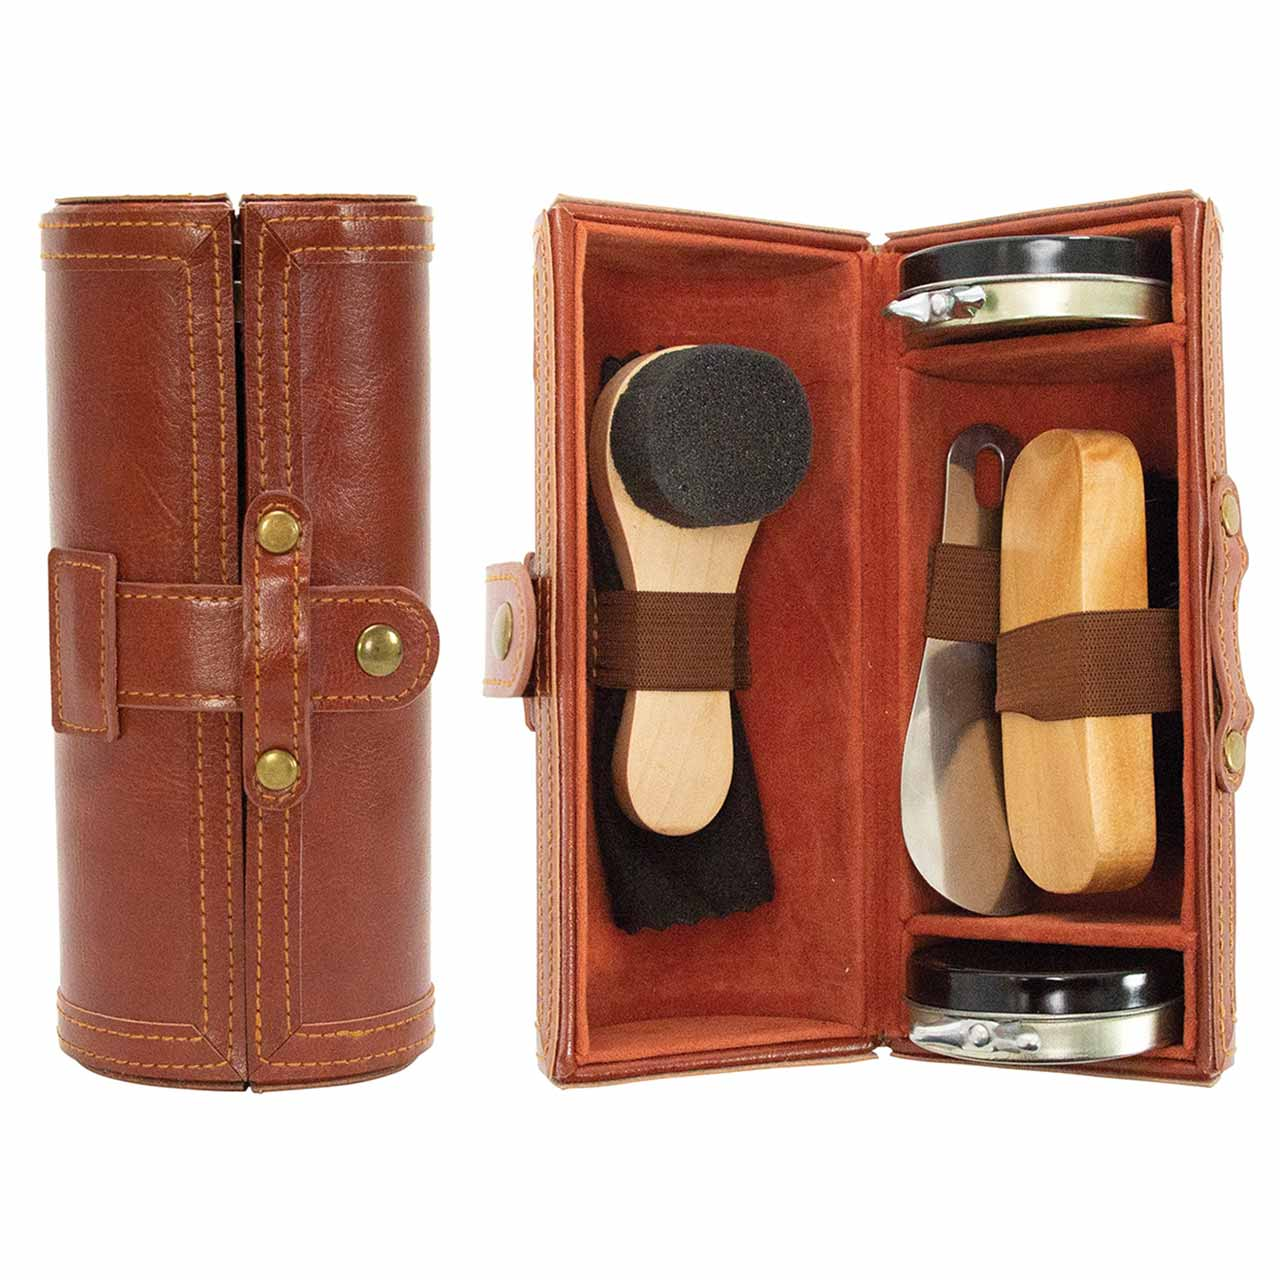 ANNABEL TRENDS Gentleman's brown vegan leather shoe shine kit | the design gift shop